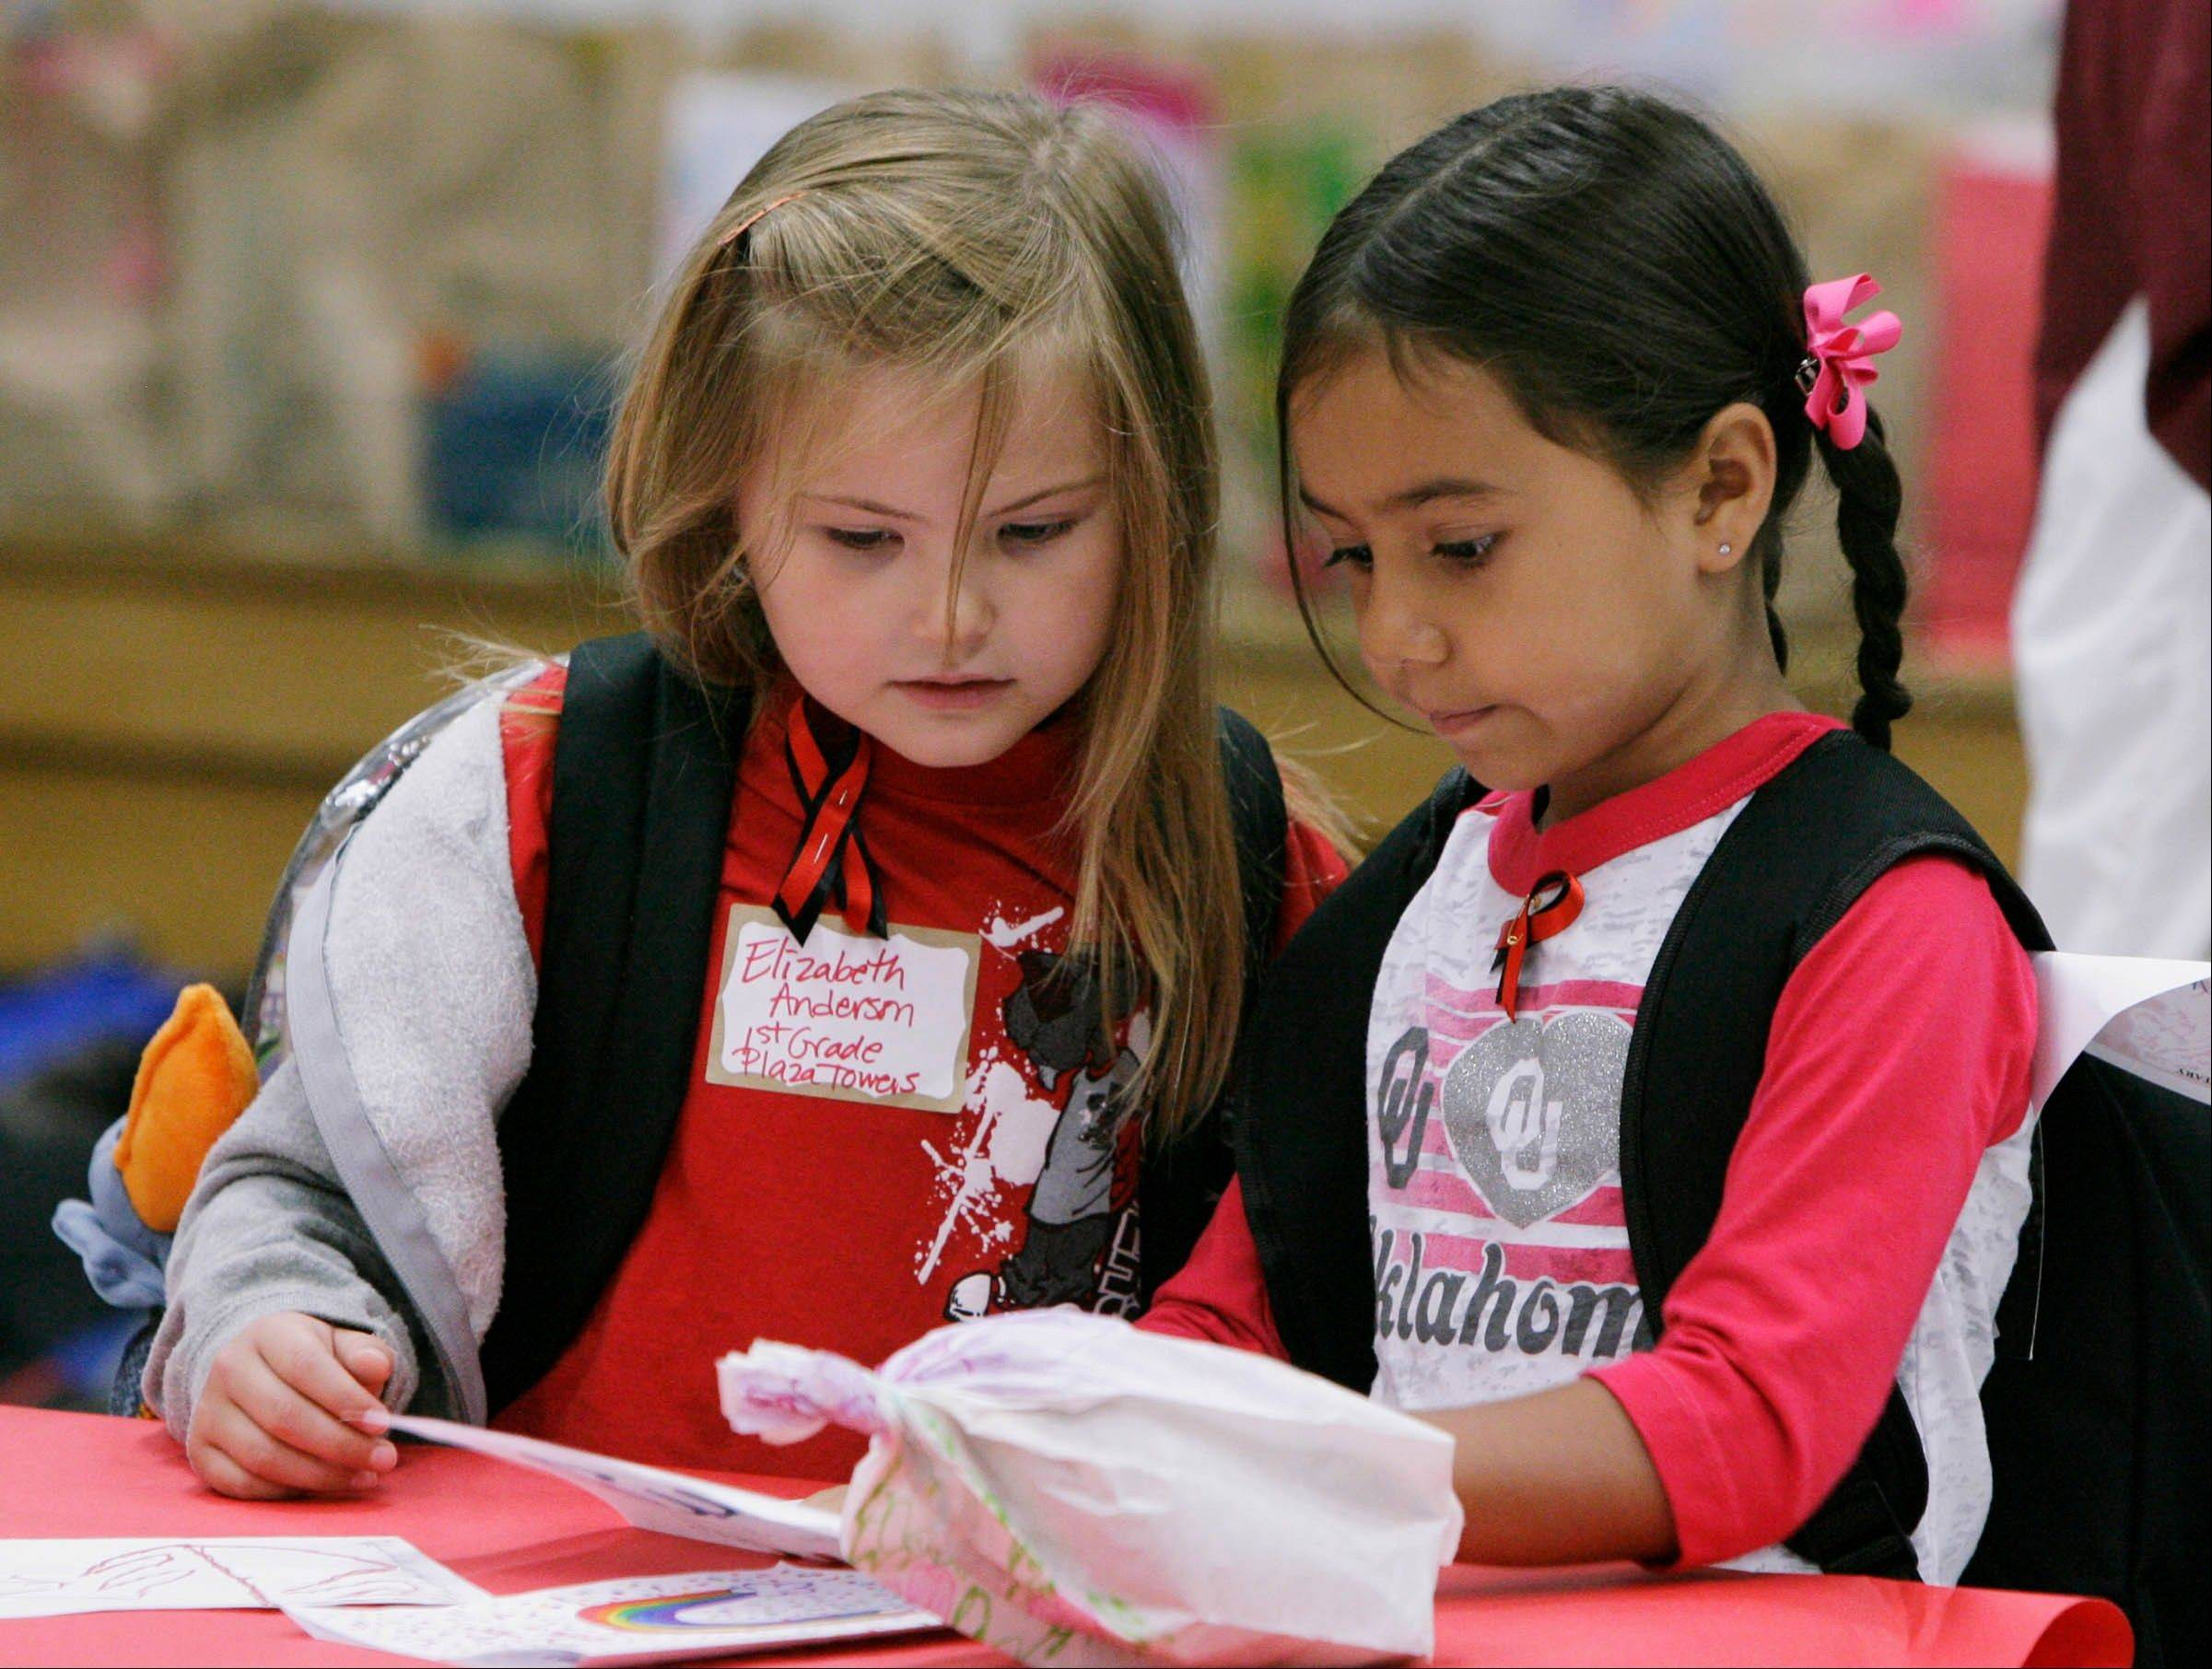 Classmates and survivors from Plaza Towers Elementary School Elizabeth Anderson, 6, left, and Rylee Pino, 6, read messages Wednesday from other children in the area during a visit to Eastlake Elementary School in Moore, Okla.